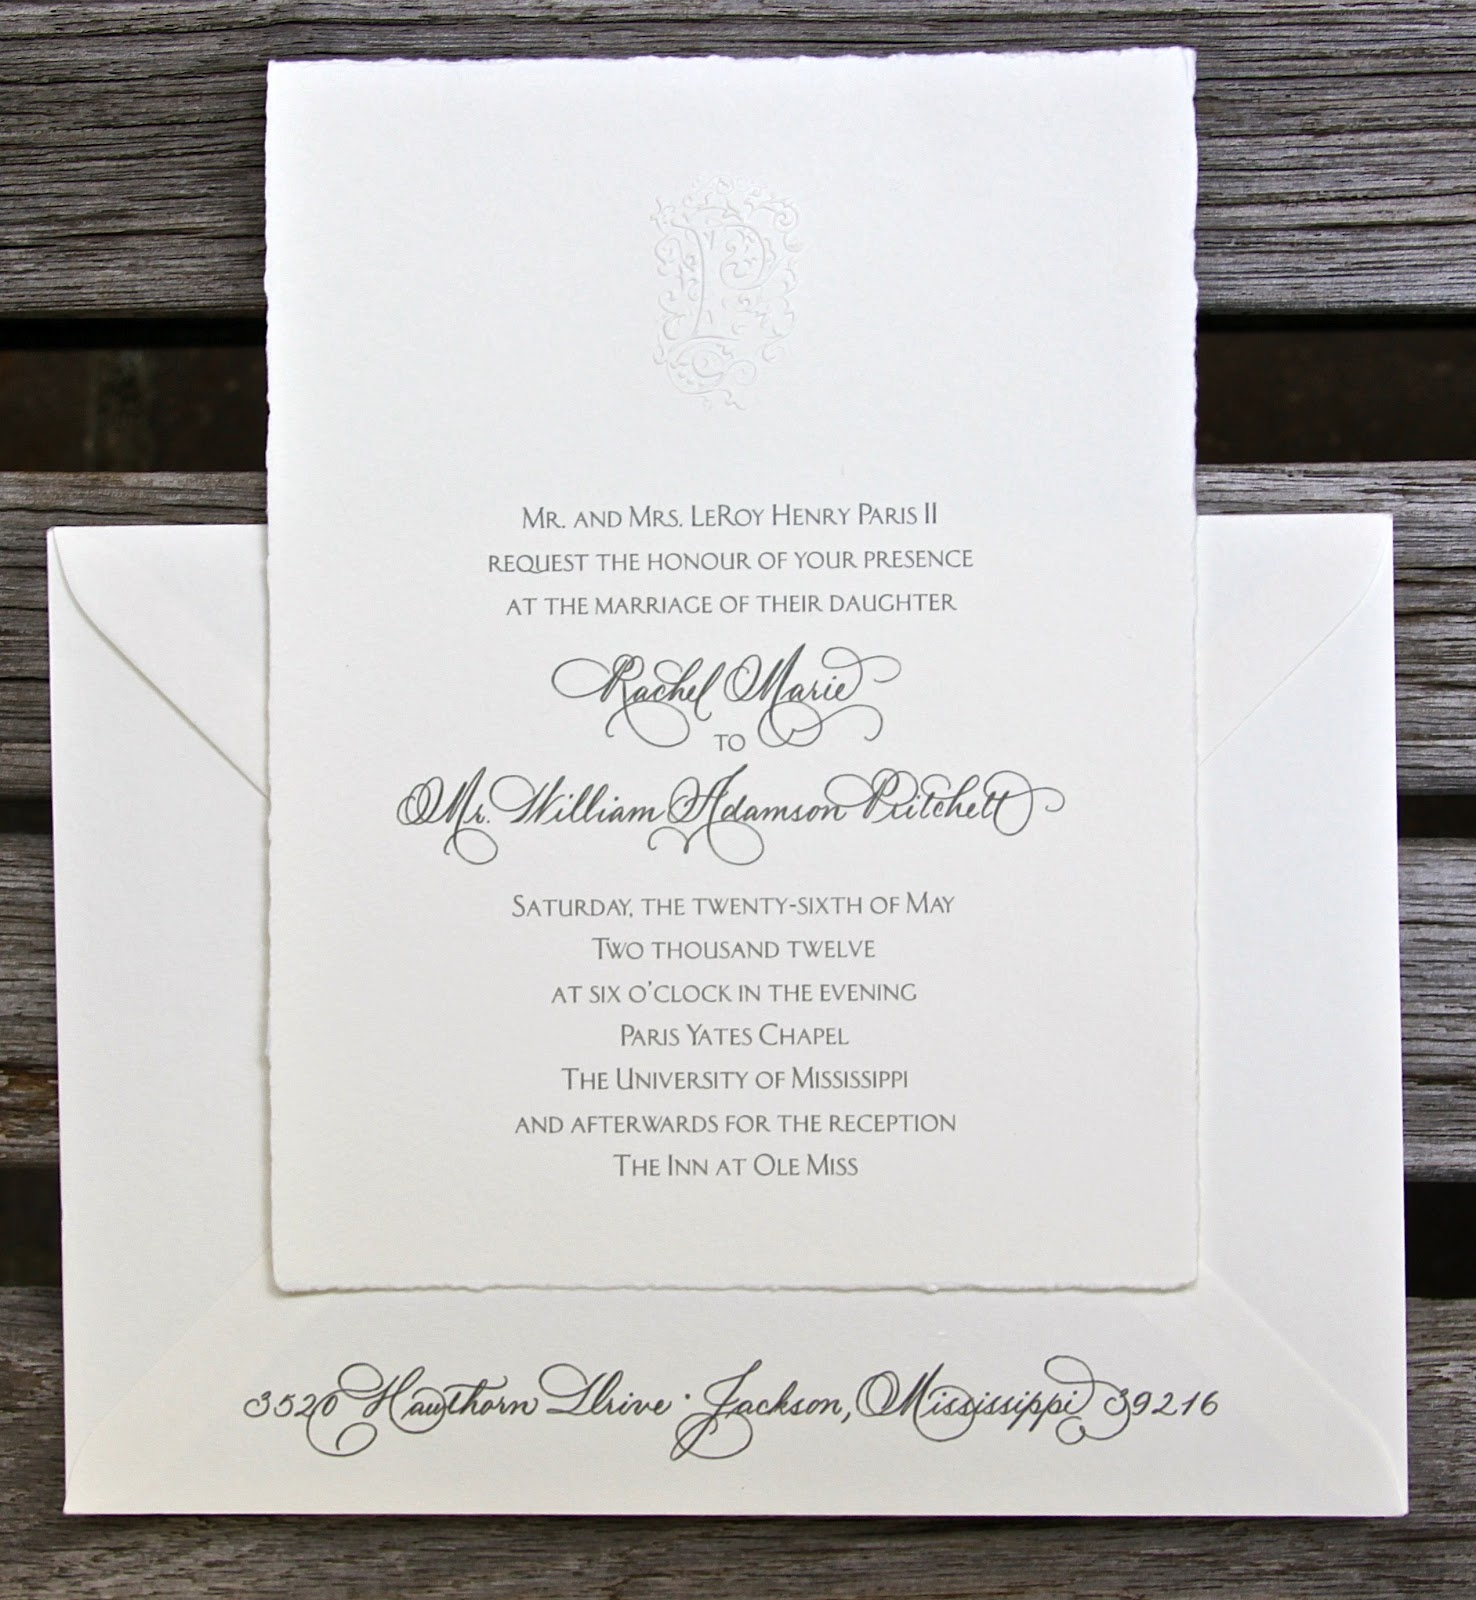 Paris - Pritchett wedding invitation : A work of art! | Fresh Ink ...